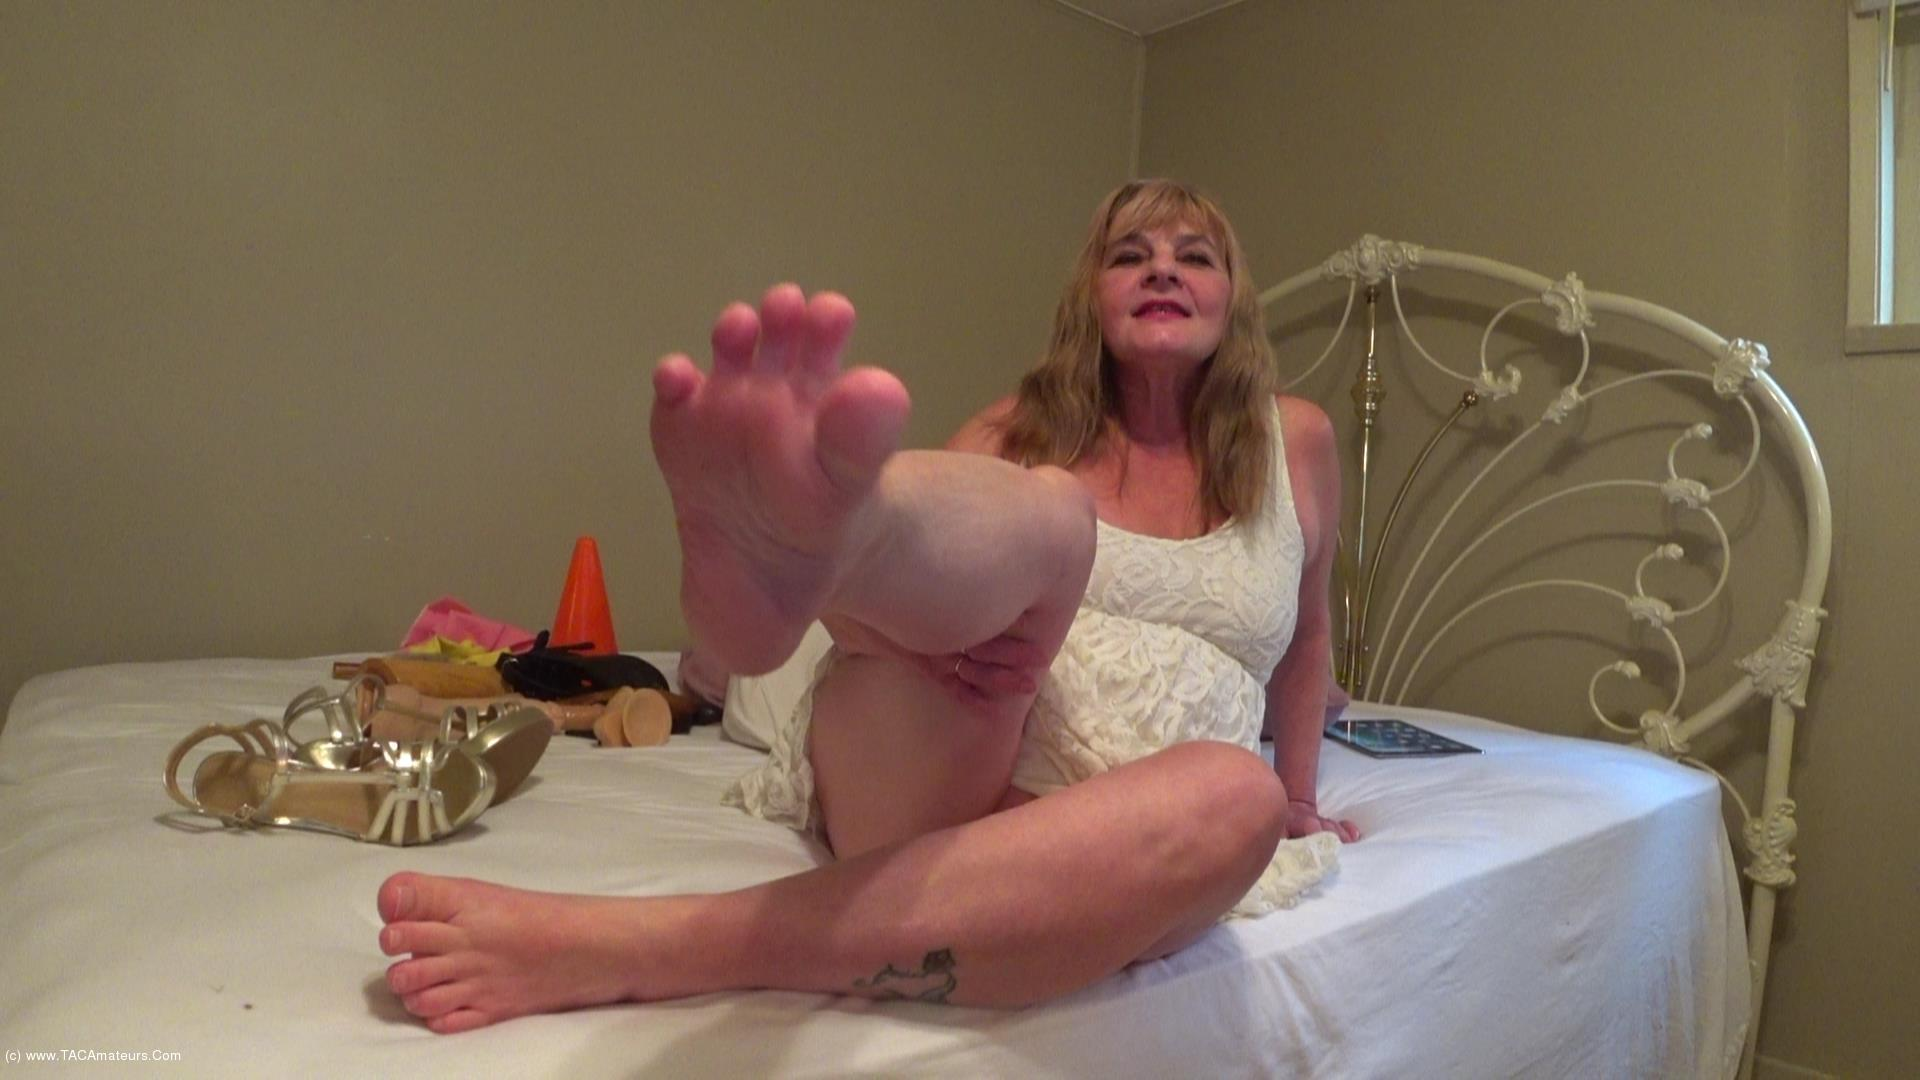 CougarBabeJolee - Barefoot In My Strappy Sandals Cum Worship Pt1 scene 0